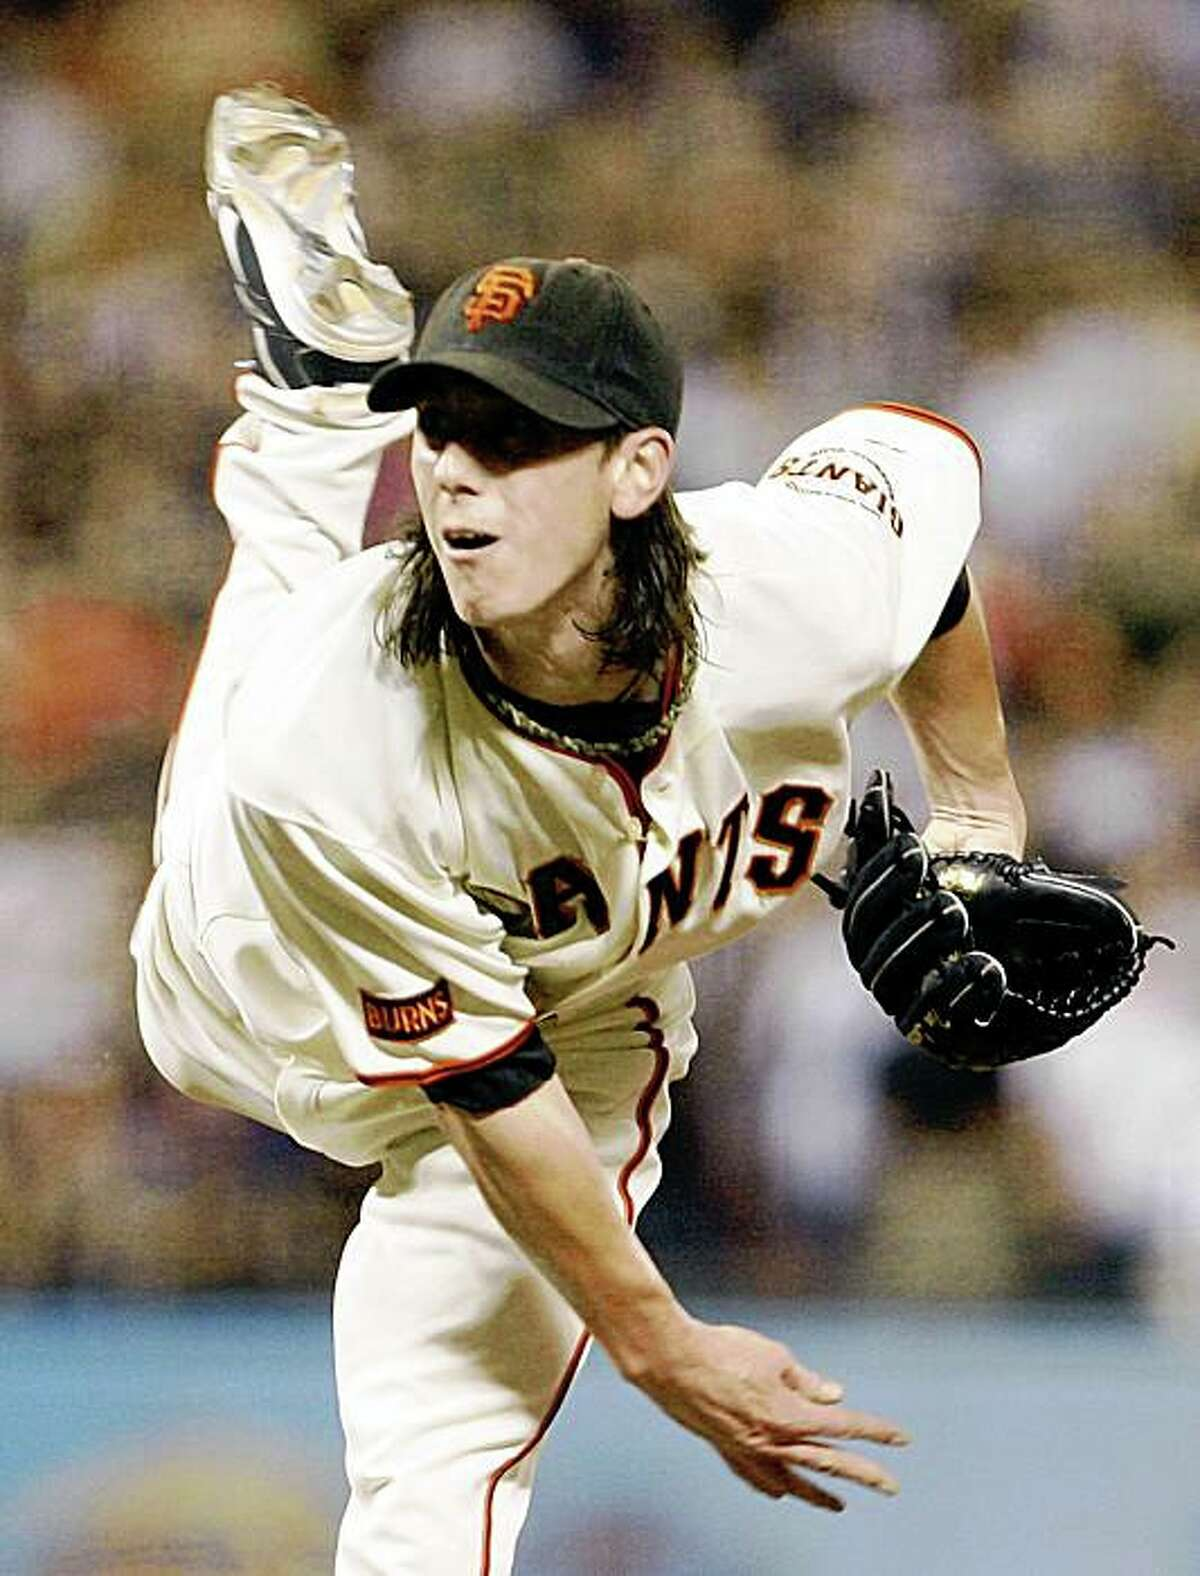 San Francisco Giants' Tim Lincecum works against the Colorado Rockies during the eighth inning of a baseball game Friday, Aug. 28, 2009, in San Francisco. (AP Photo/Ben Margot)